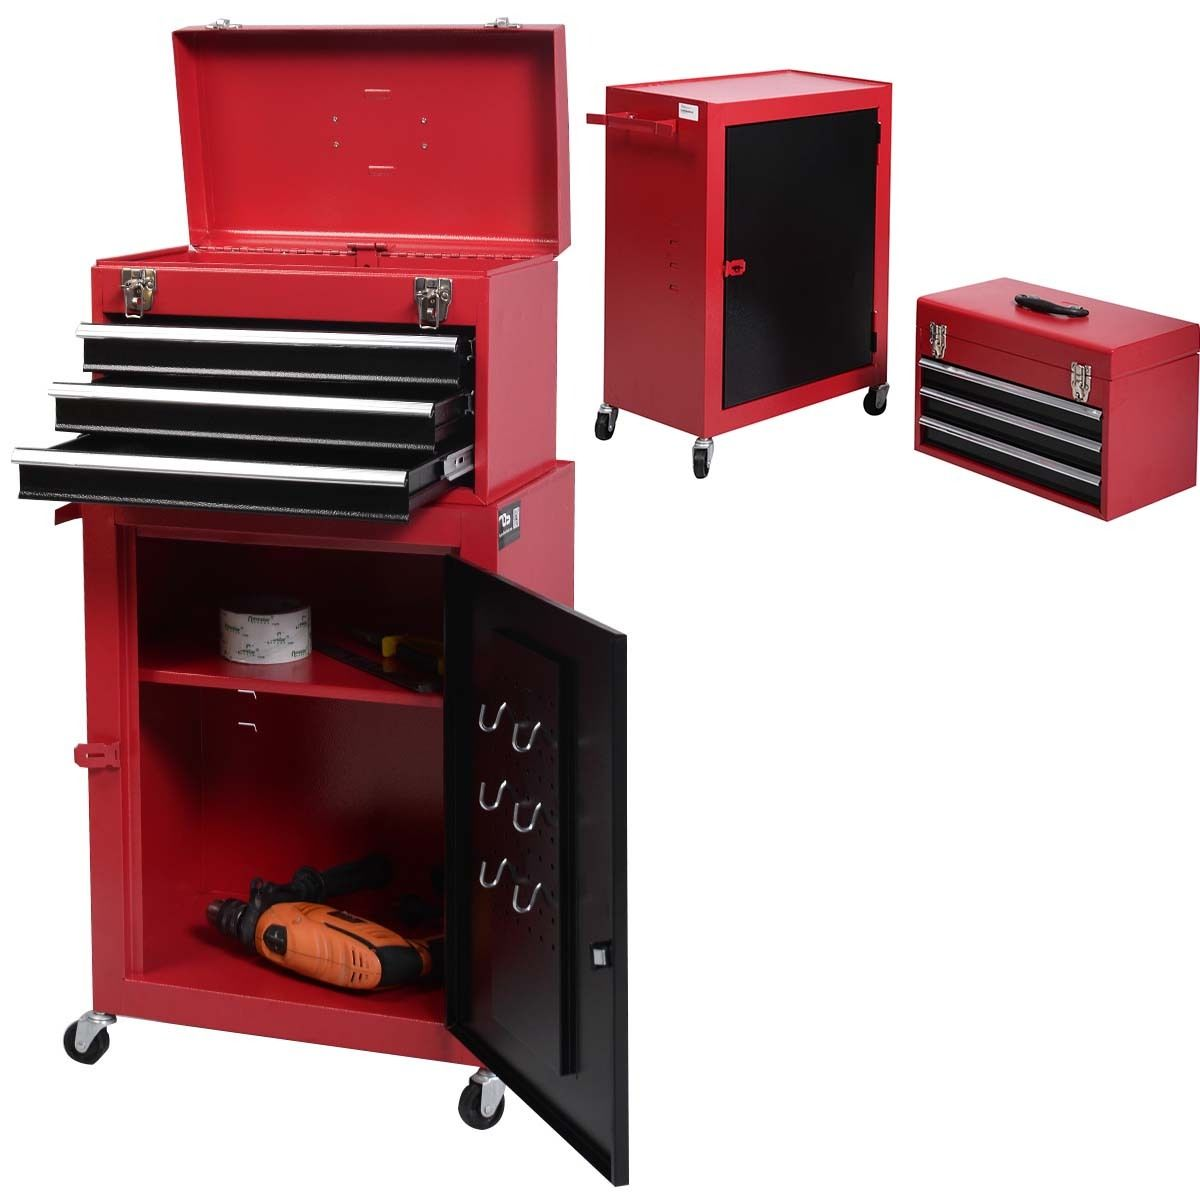 Costway 2pc Mini Tool Chest & Cabinet Storage Box Rolling Garage Toolbox Organizer by Costway